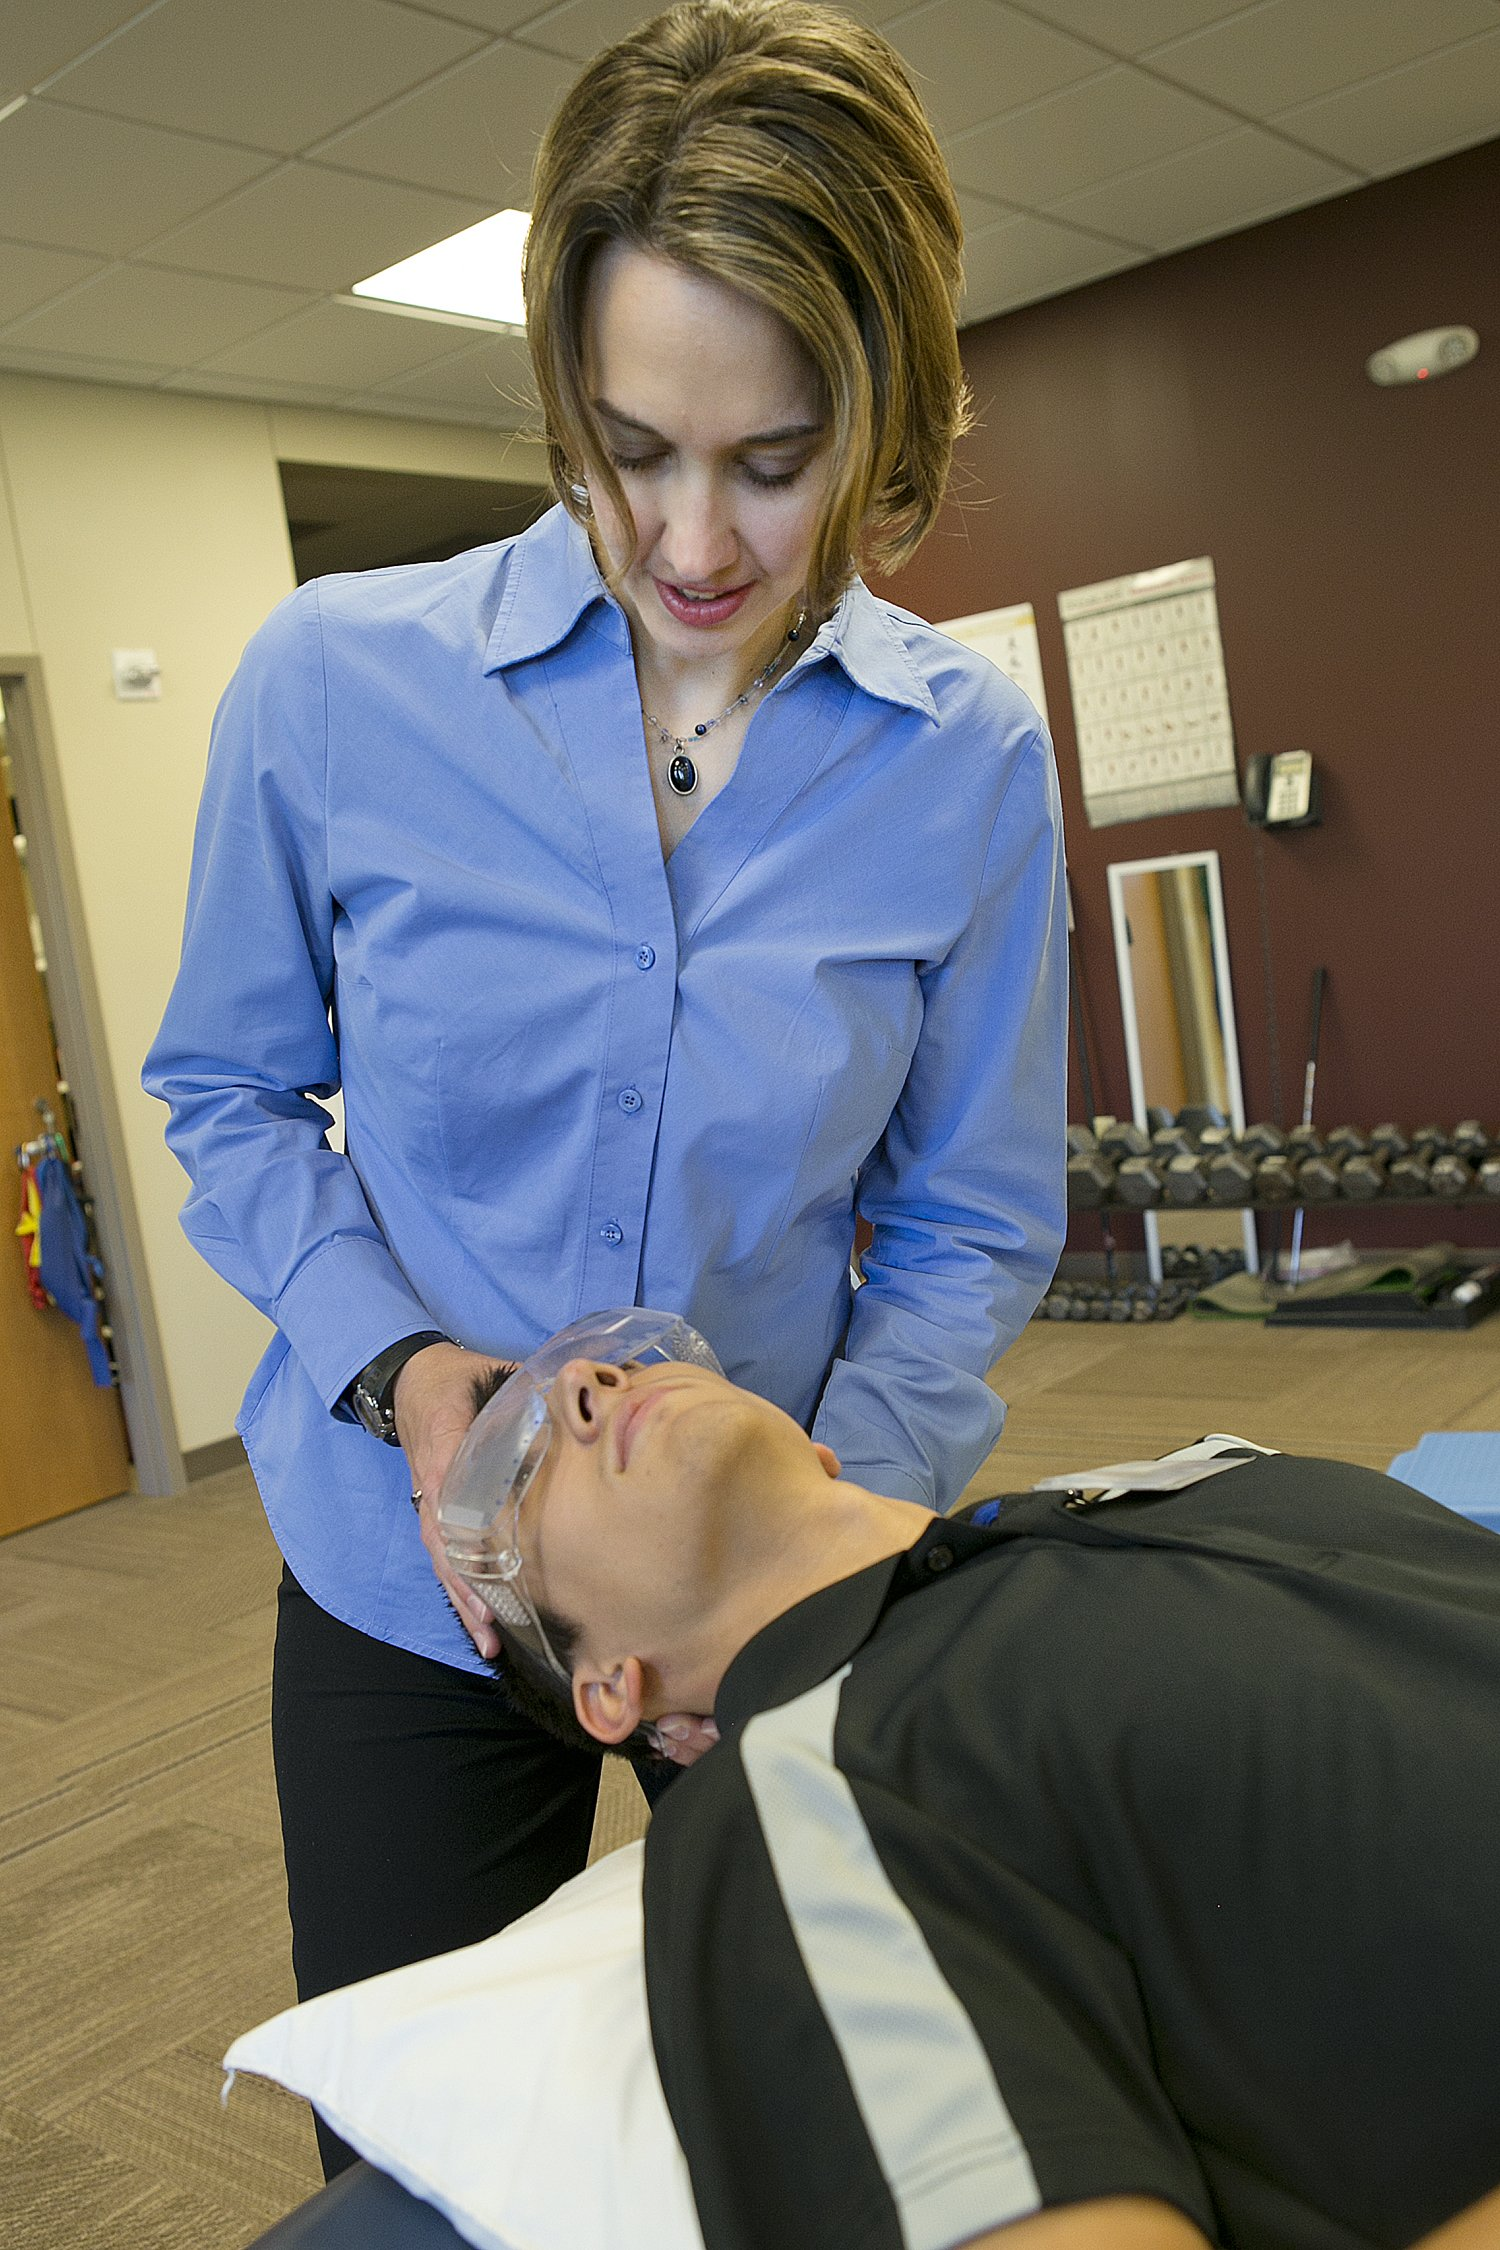 A patient receives physical therapy at Moline HealthPlex